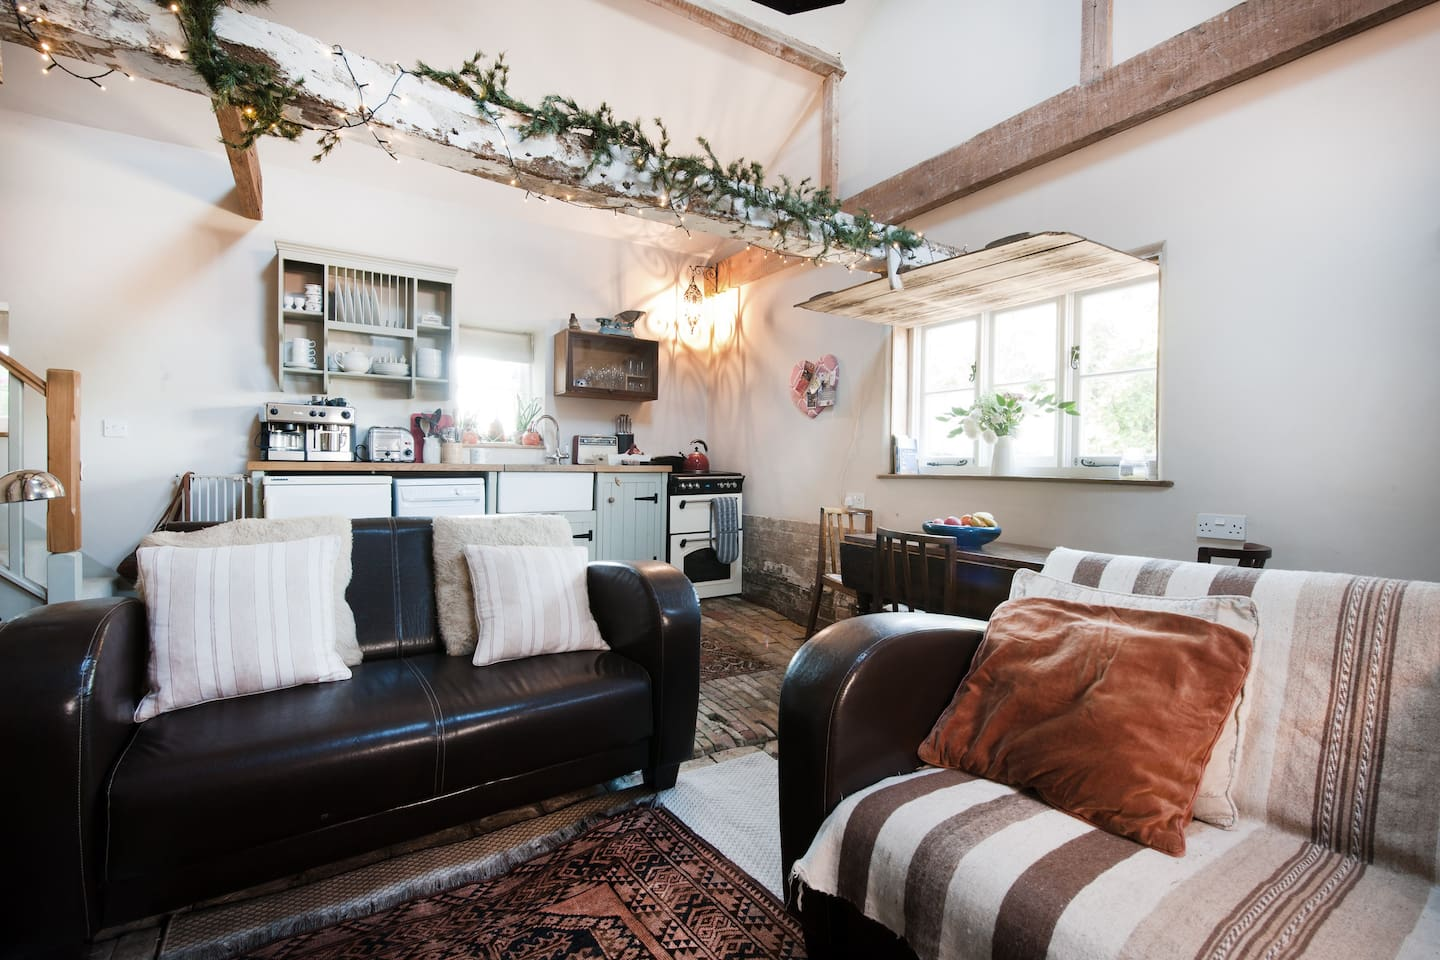 Double height open plan living with original brick floor and wooden shutter